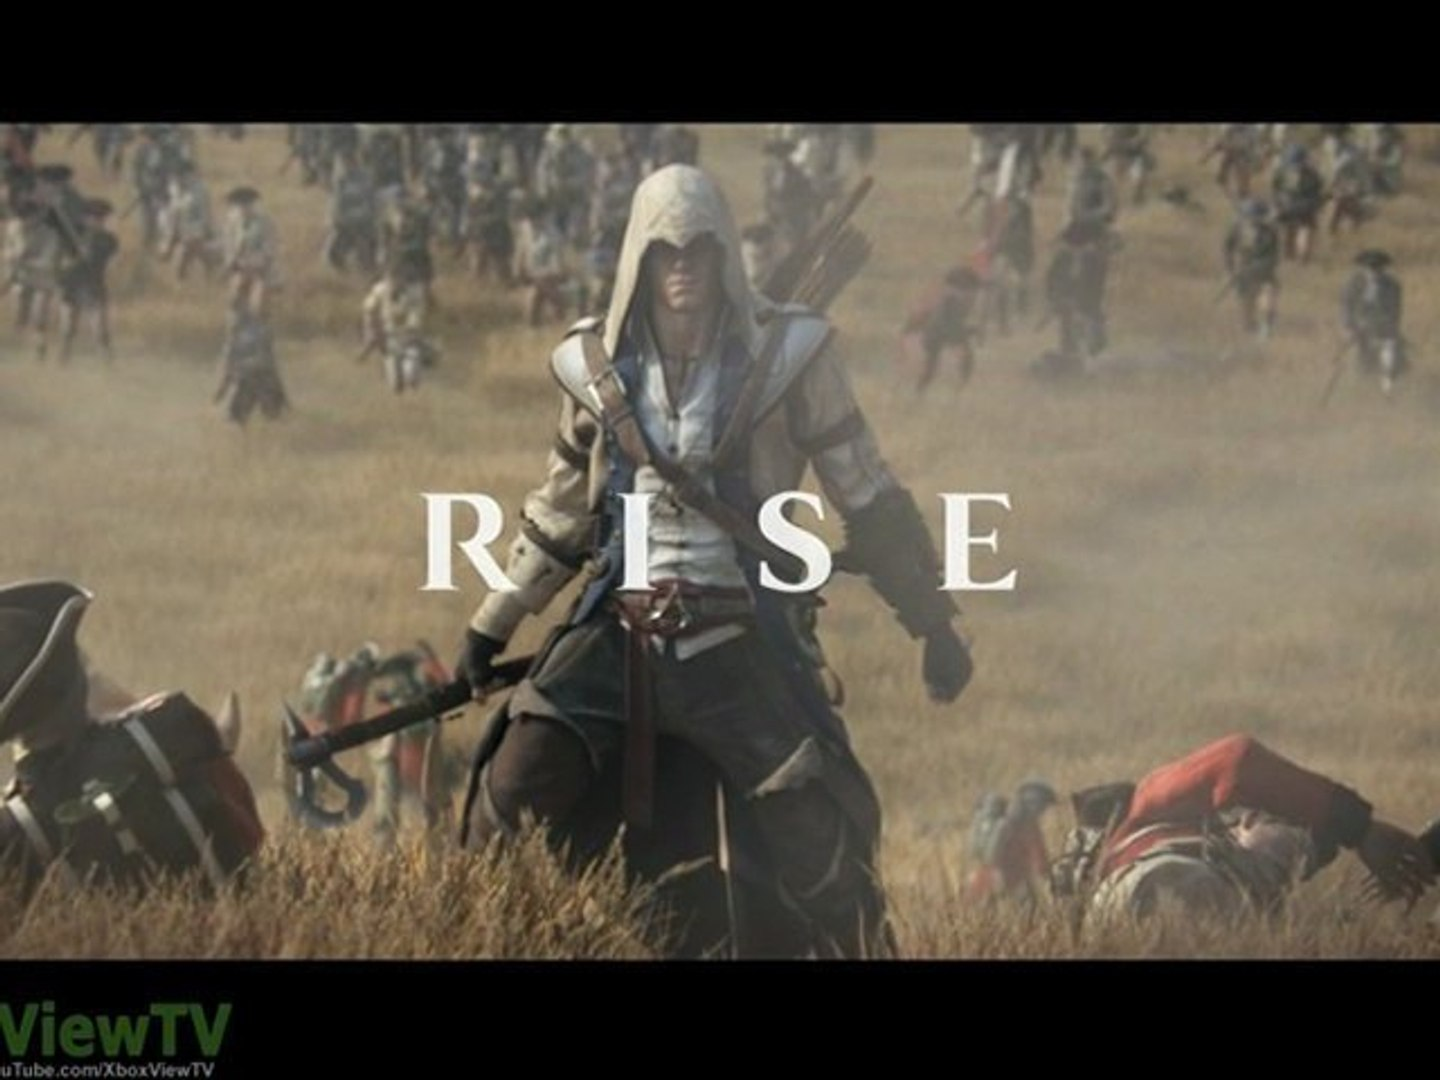 Assassin S Creed 3 Rise Trailer English 2012 Full Hd Video